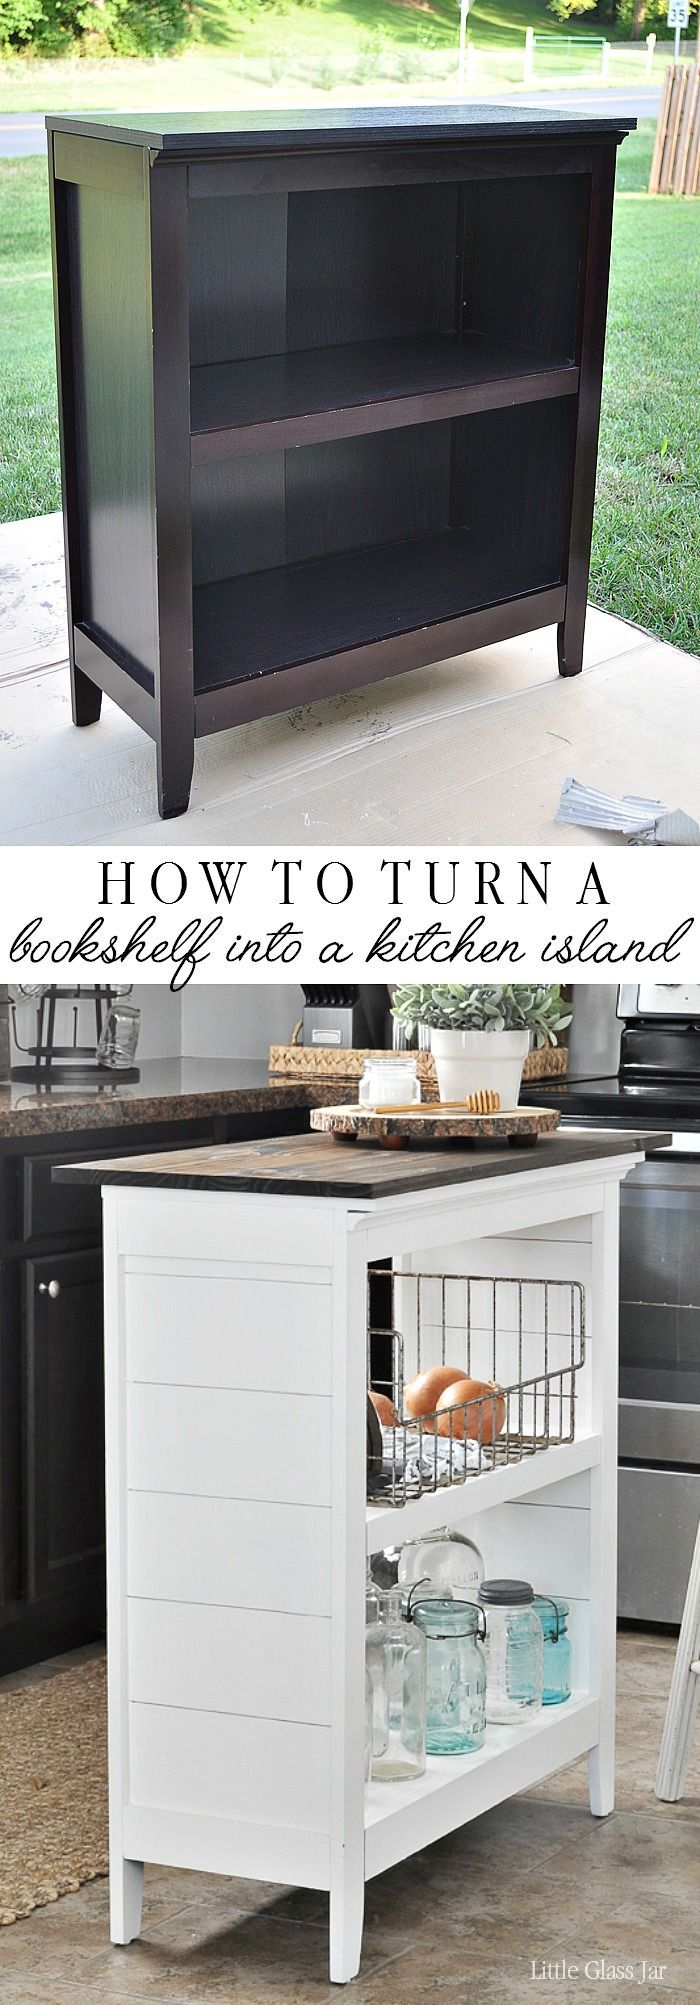 ^ 1000+ ideas about Build Kitchen Island on Pinterest Urban chic ...